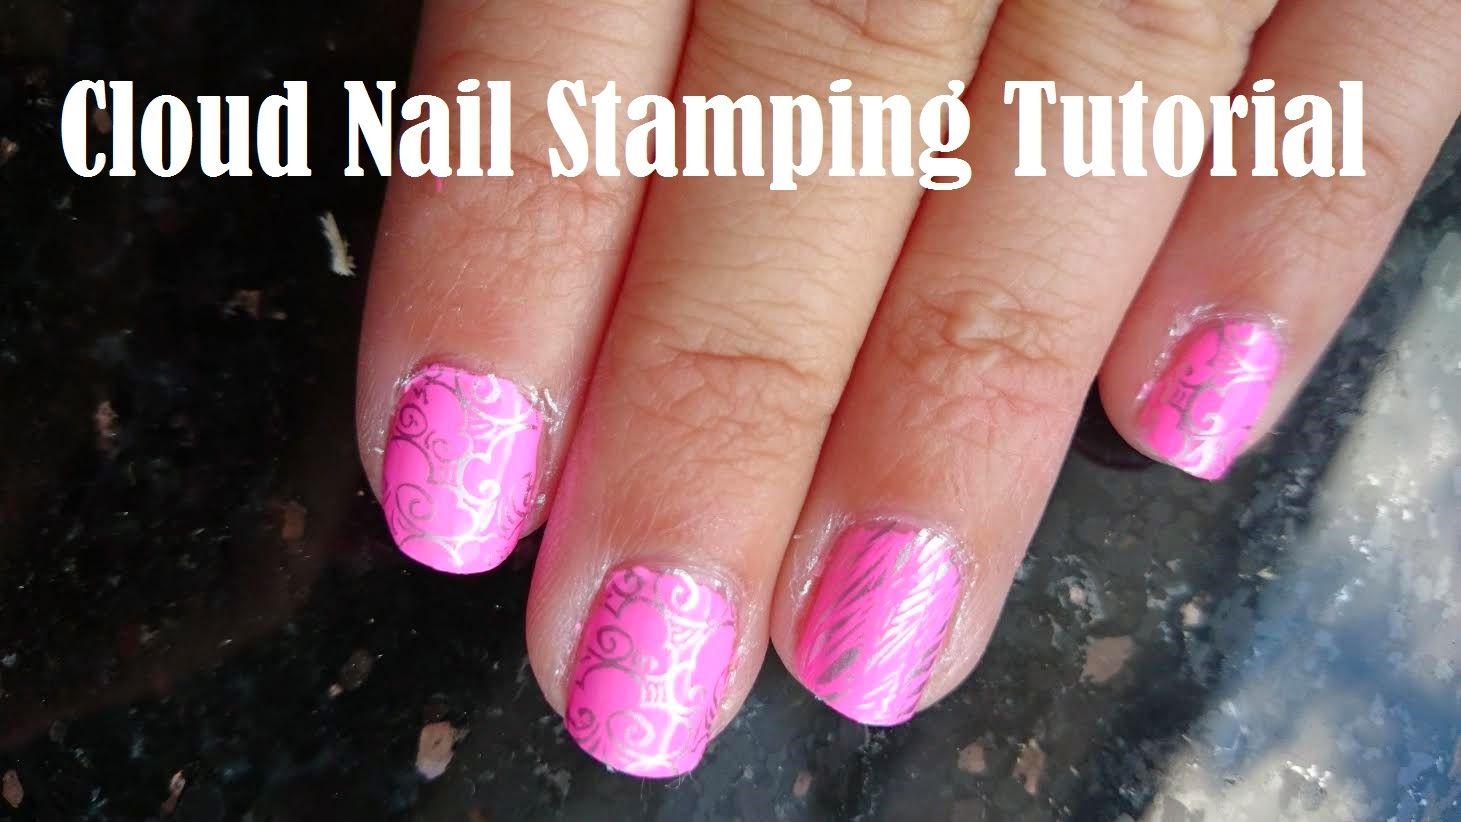 bundle monster bm-316 nail stamping tutorial clouds grass youtube pink silver barry m models own